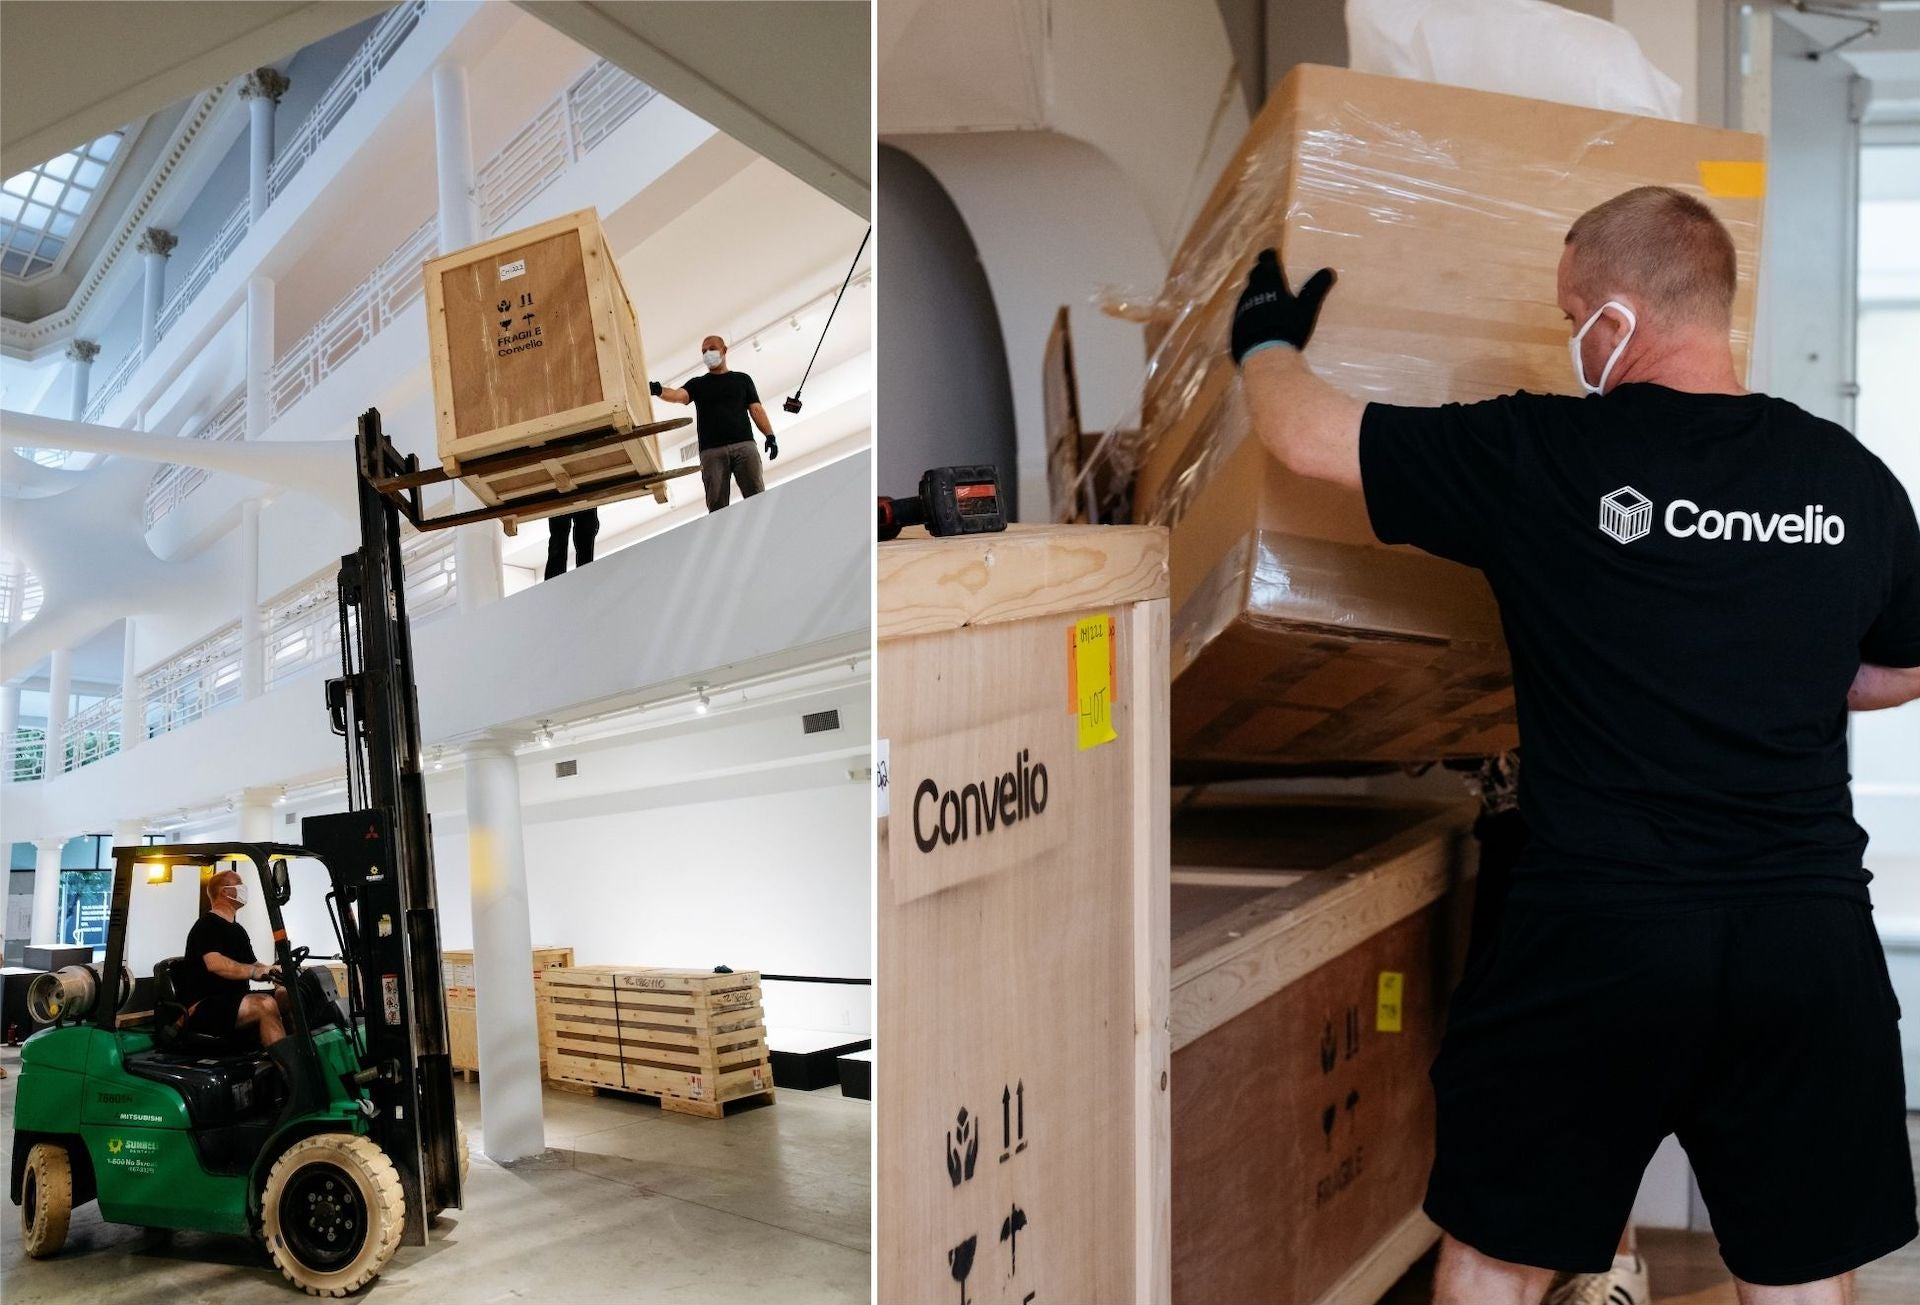 Convelio loading in crates at Design Miami/ 2020. Photo © Adinayev